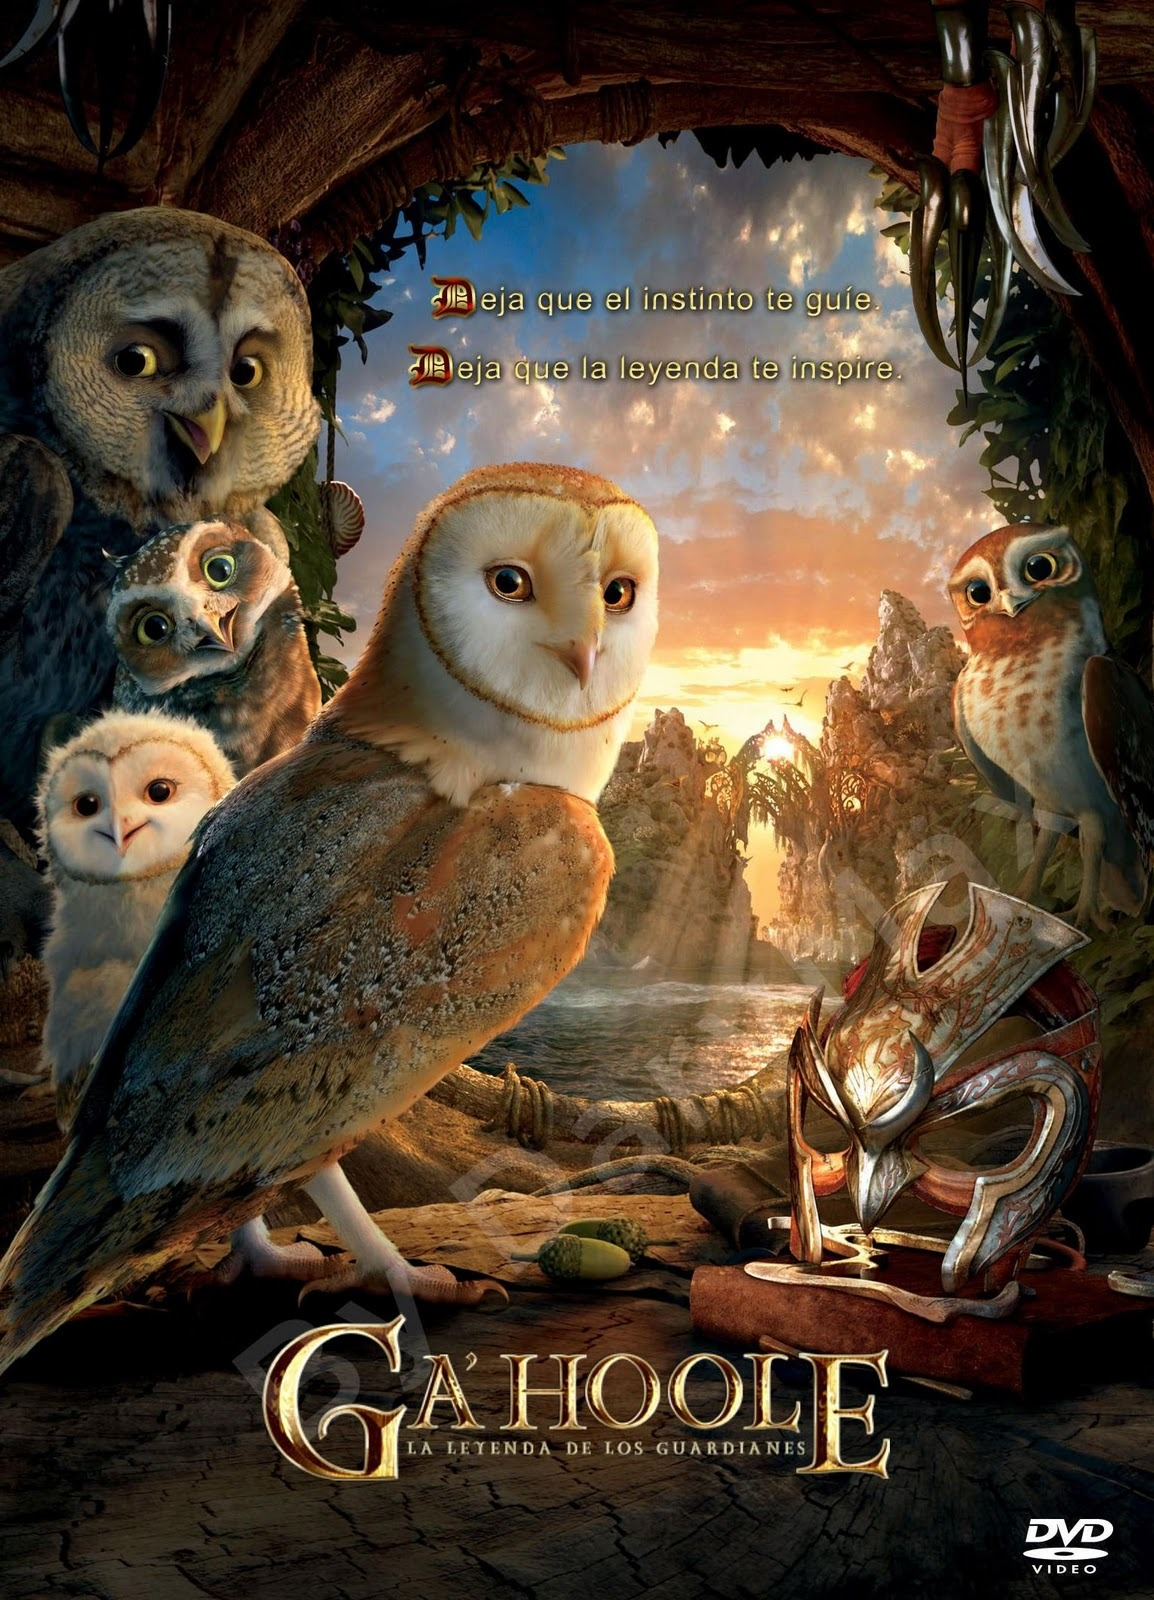 Legend of the Guardians (DVDRip Español Latino) (2010)